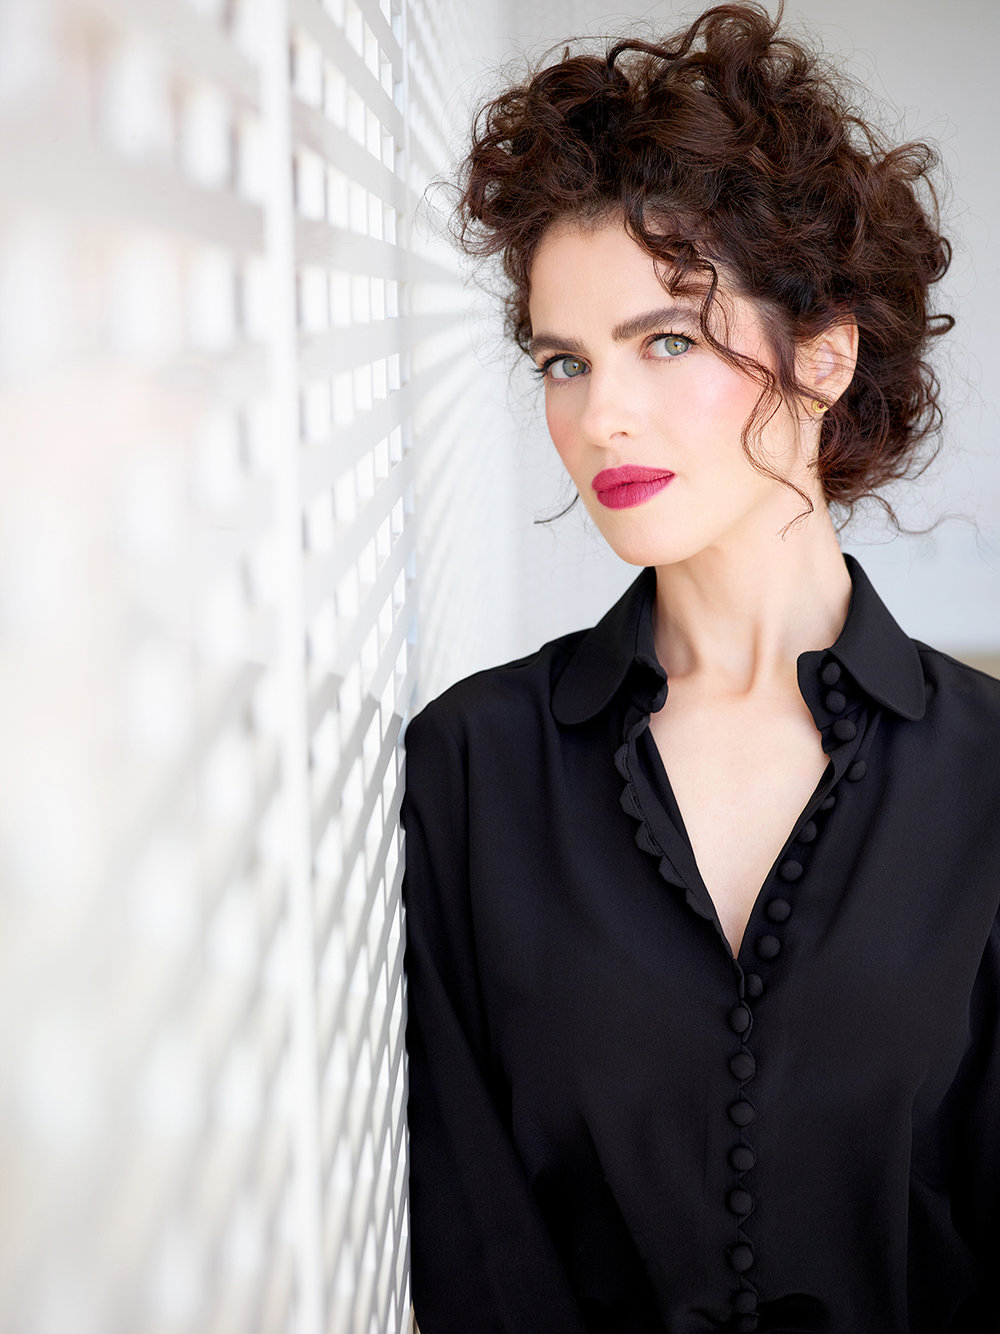 MATERIAL ECOLOGIST Neri Oxman